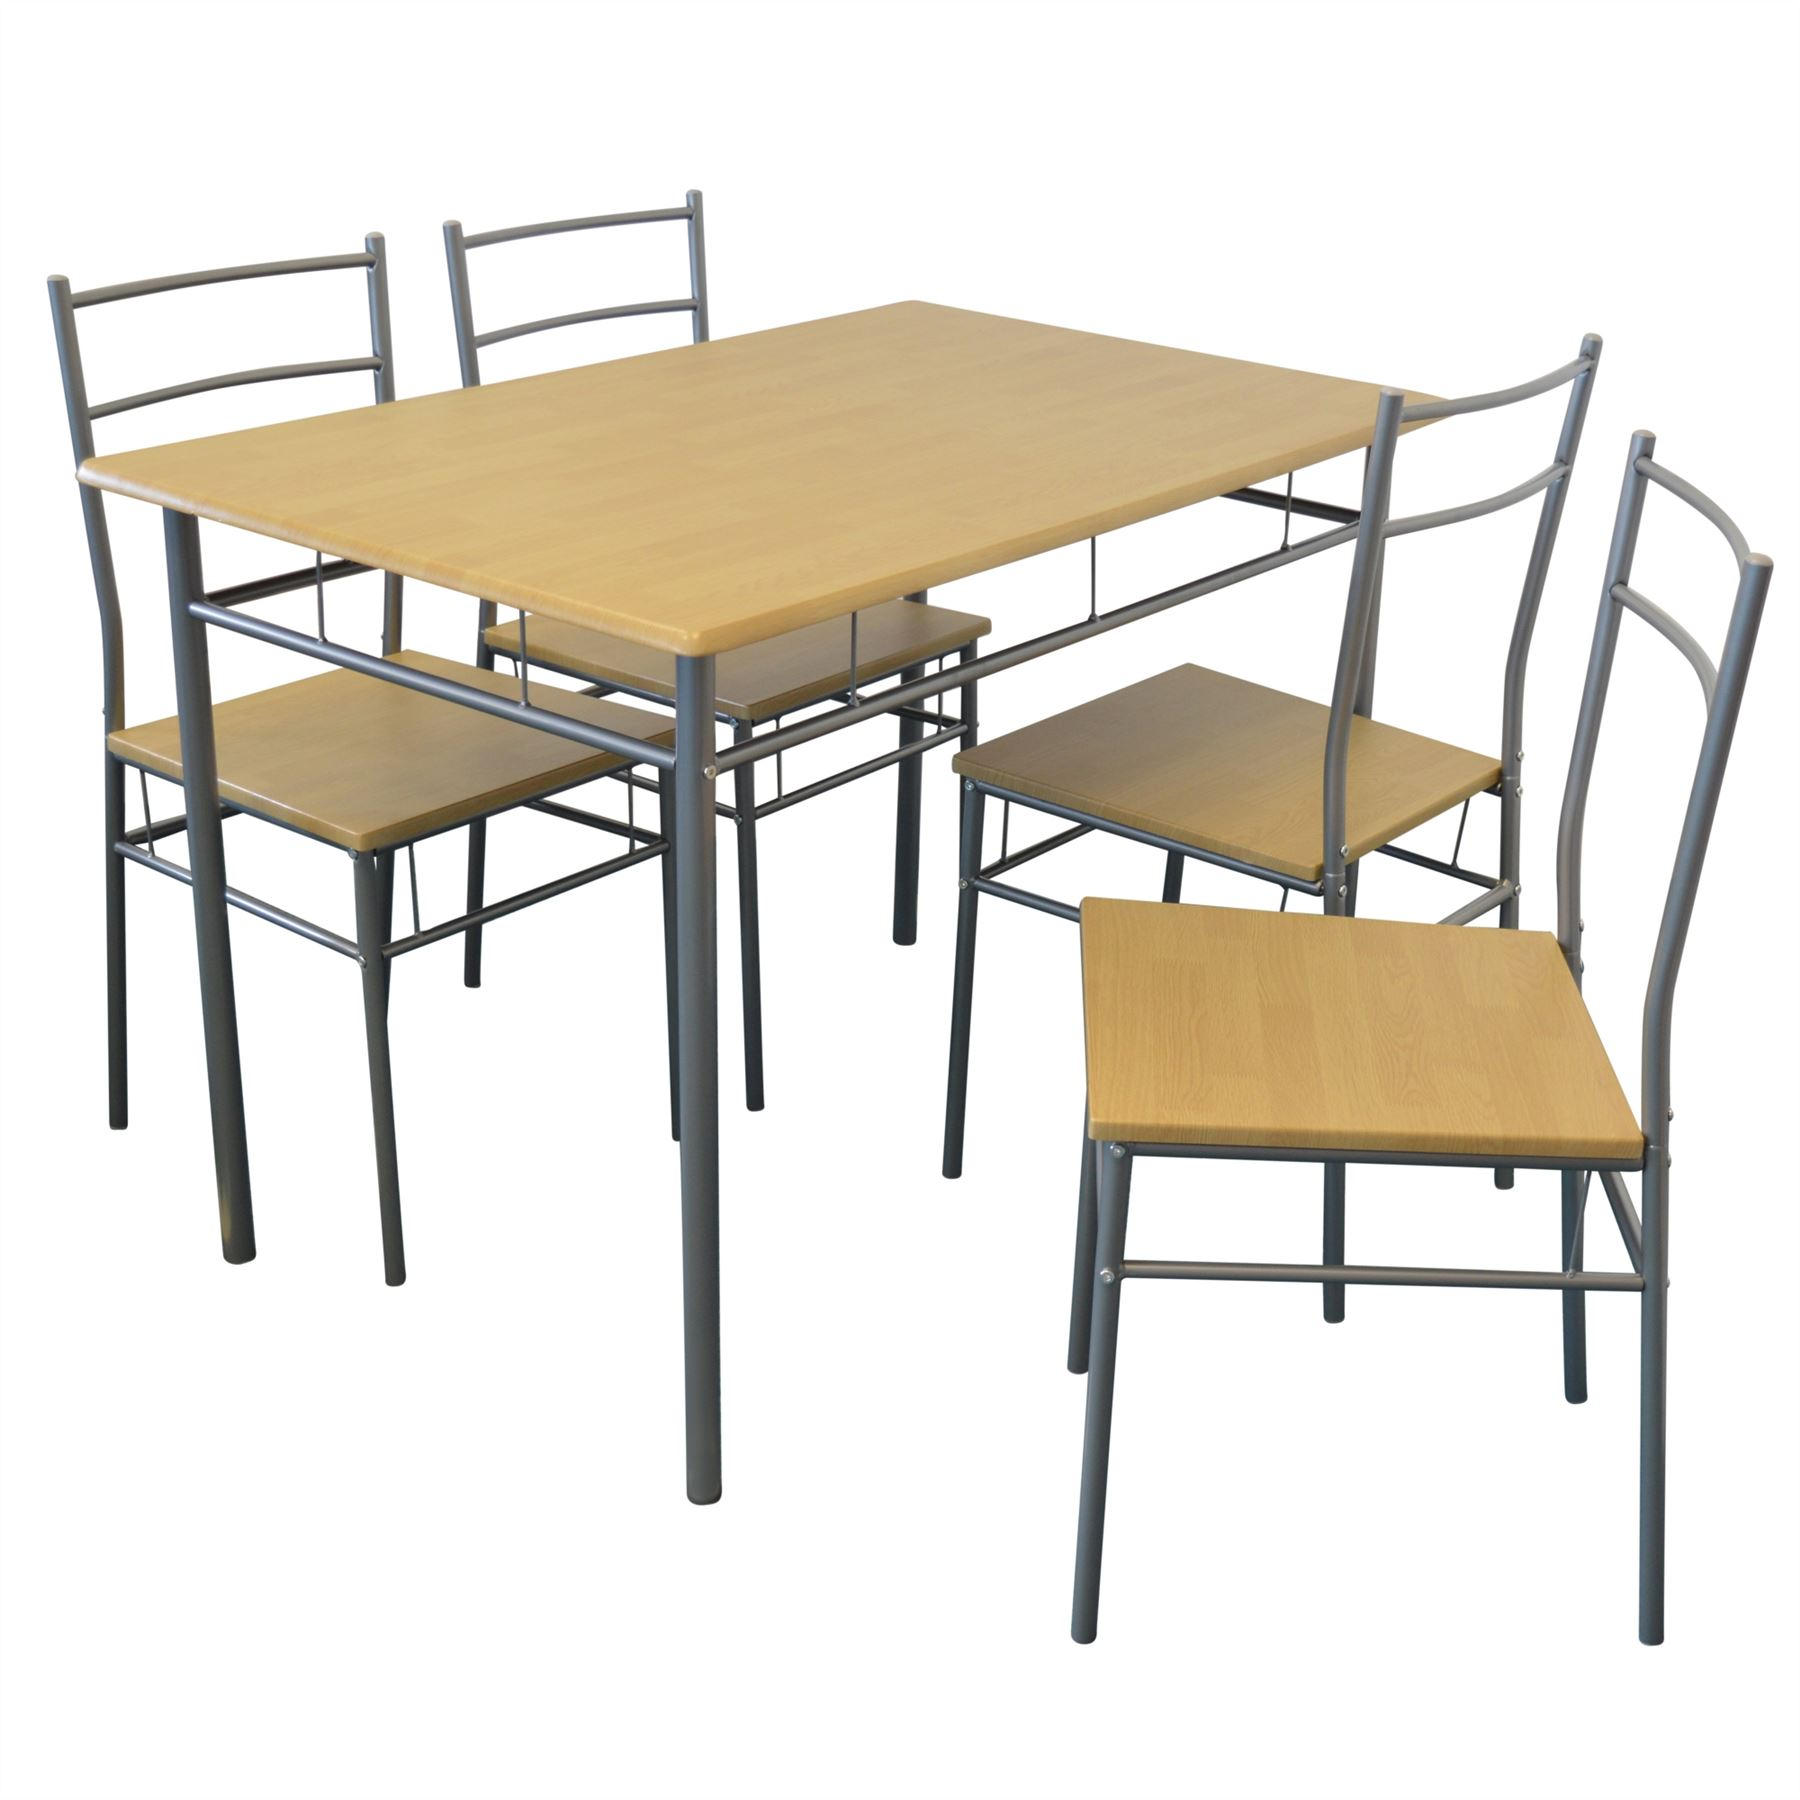 5 piece kitchen table set round wood dining room and chairs furniture